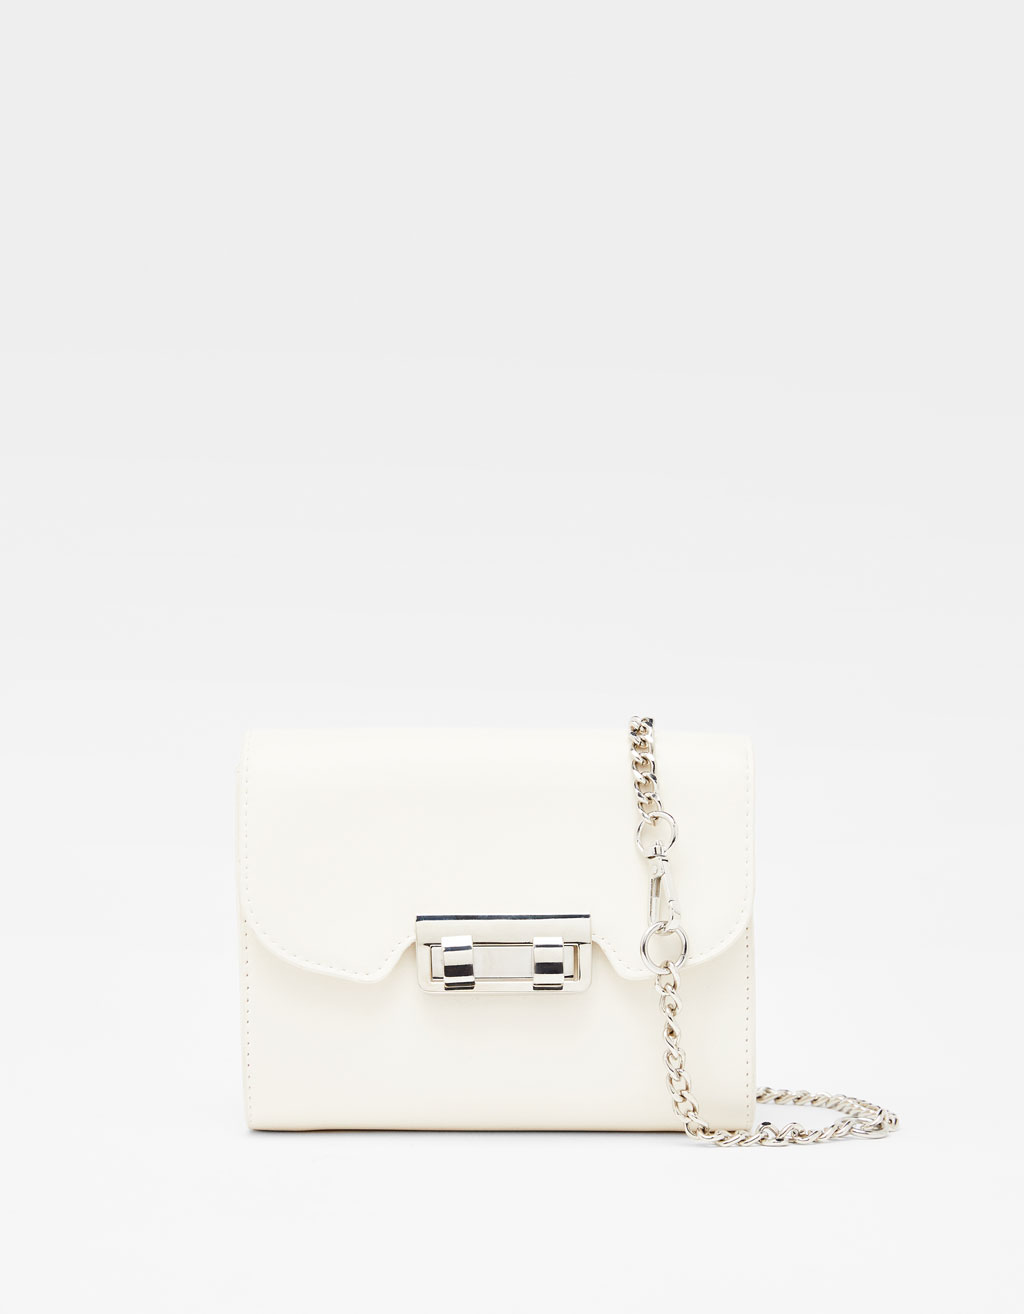 Bags - COLLECTION - WOMEN - Bershka United States b7543222bd6e5